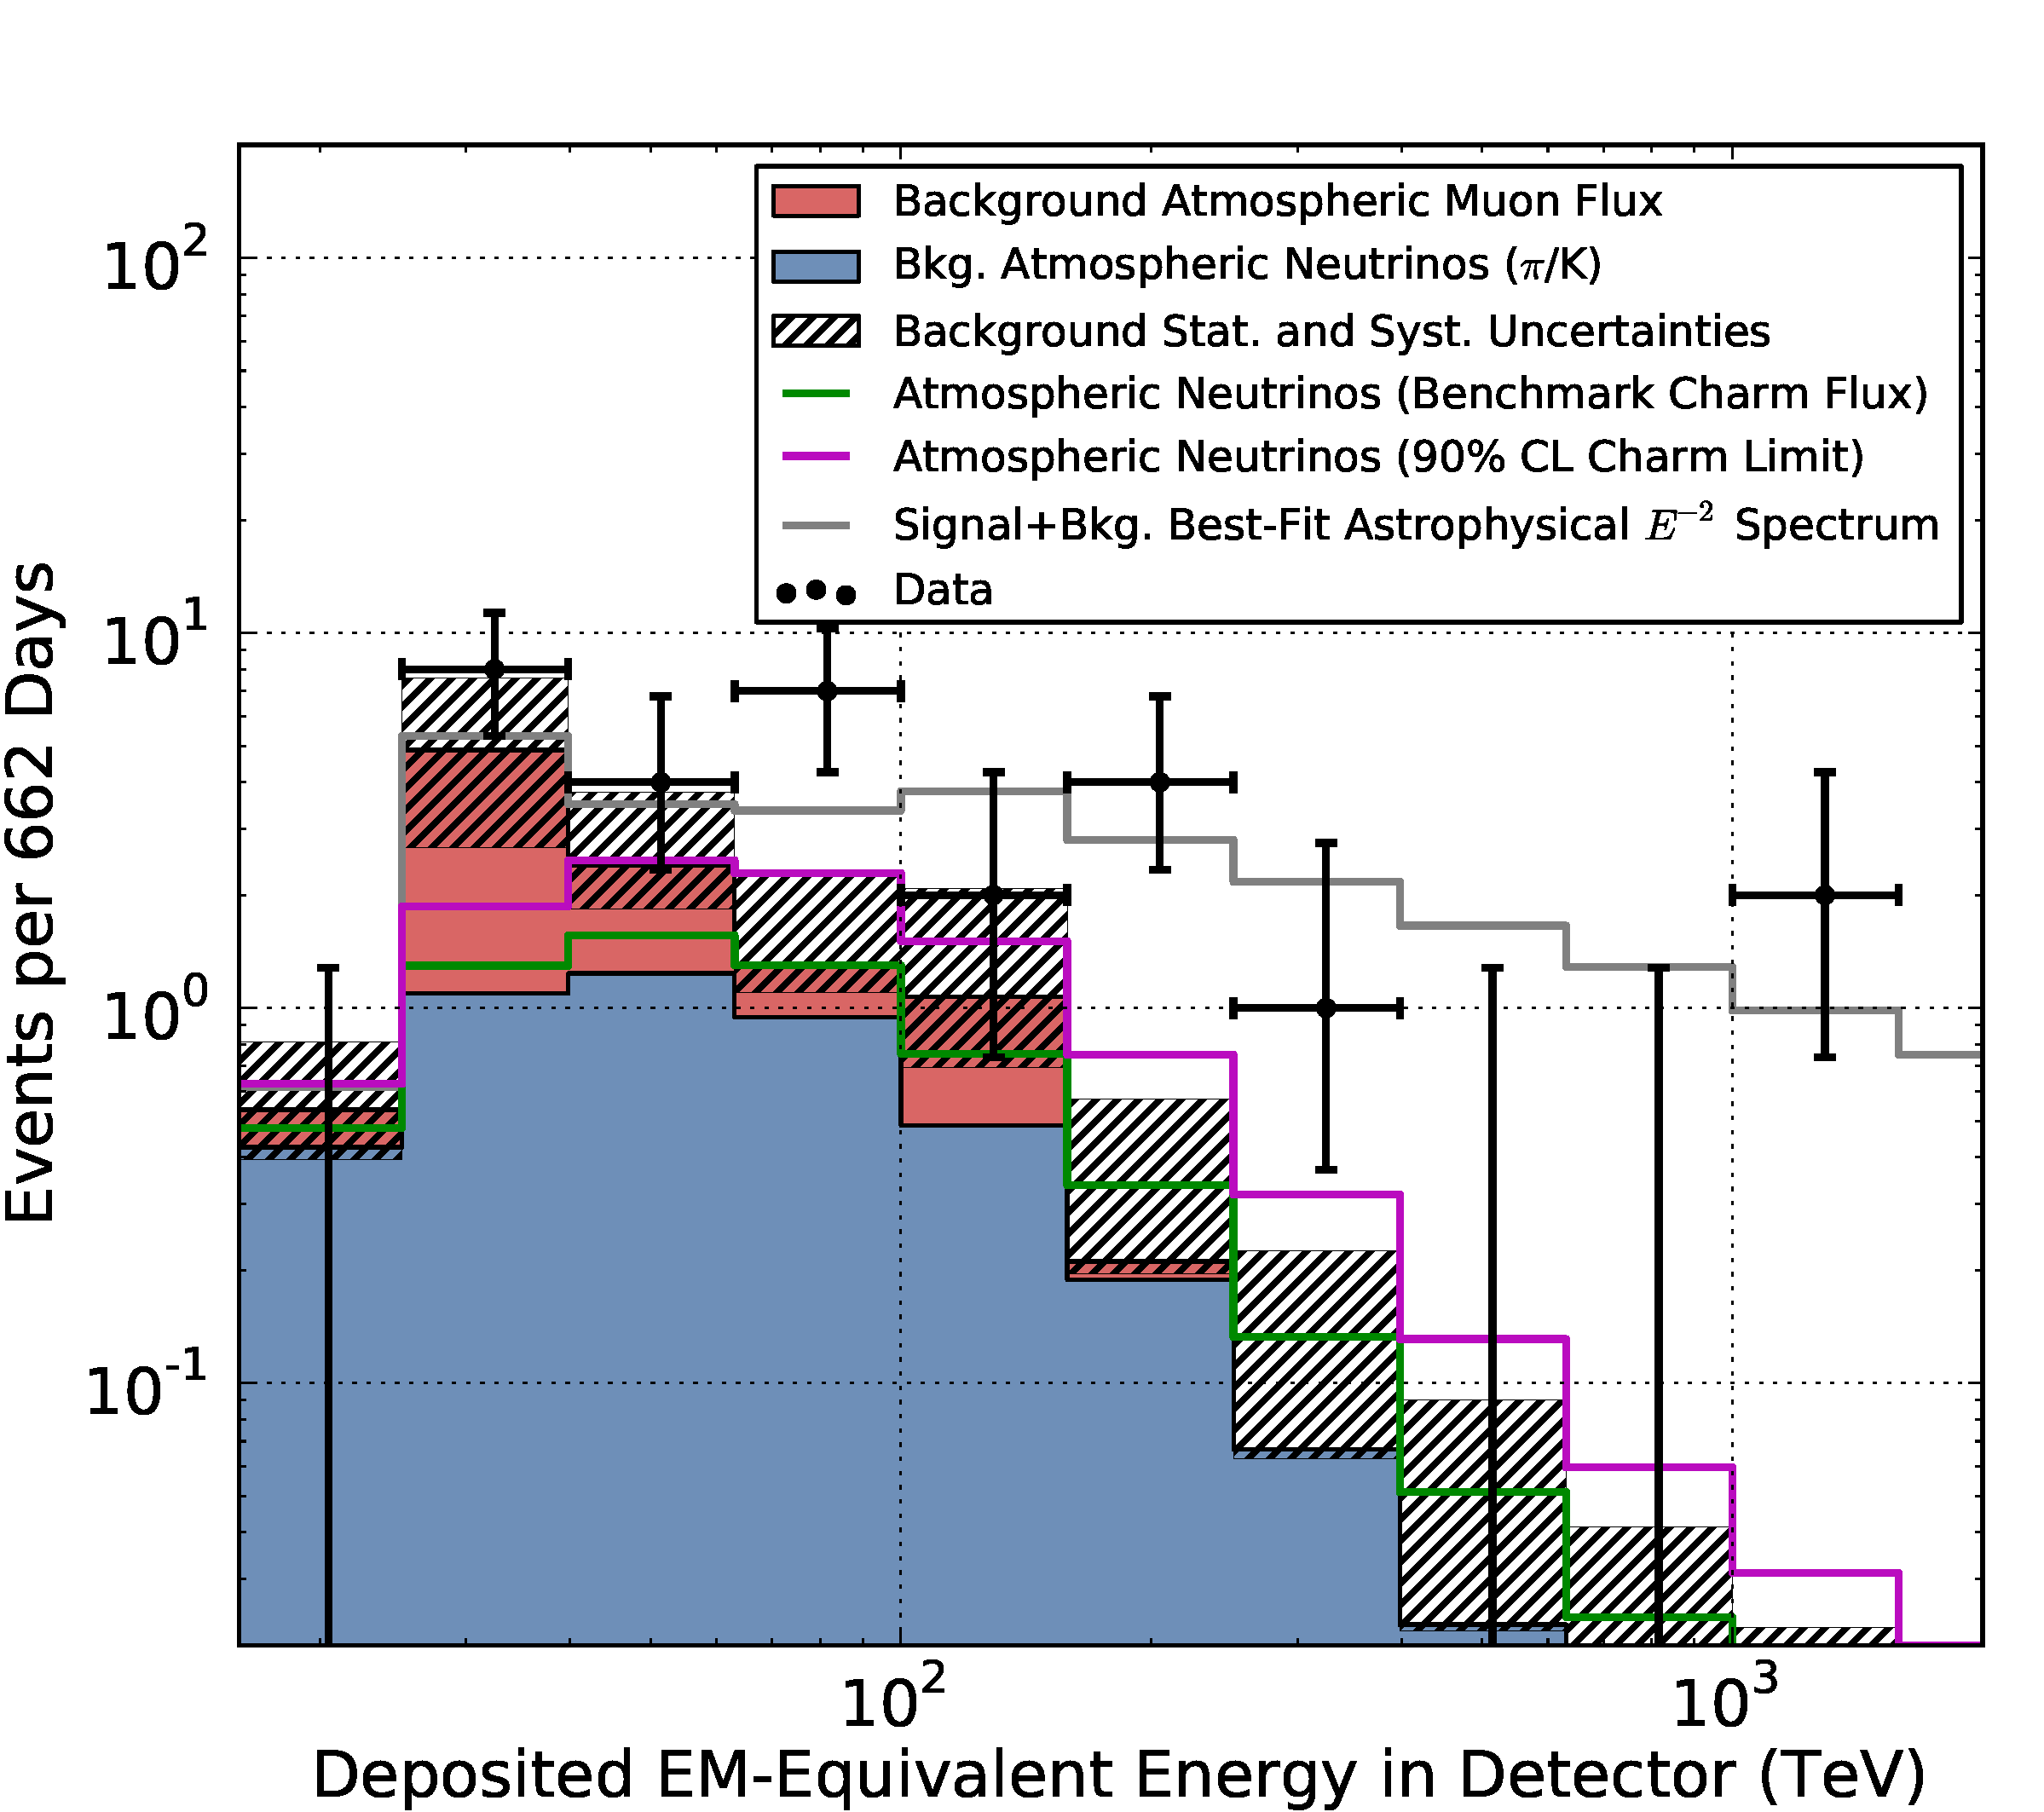 The flux of extraterrestrial high-energy neutrinos in IceCube as a function of the deposited energy